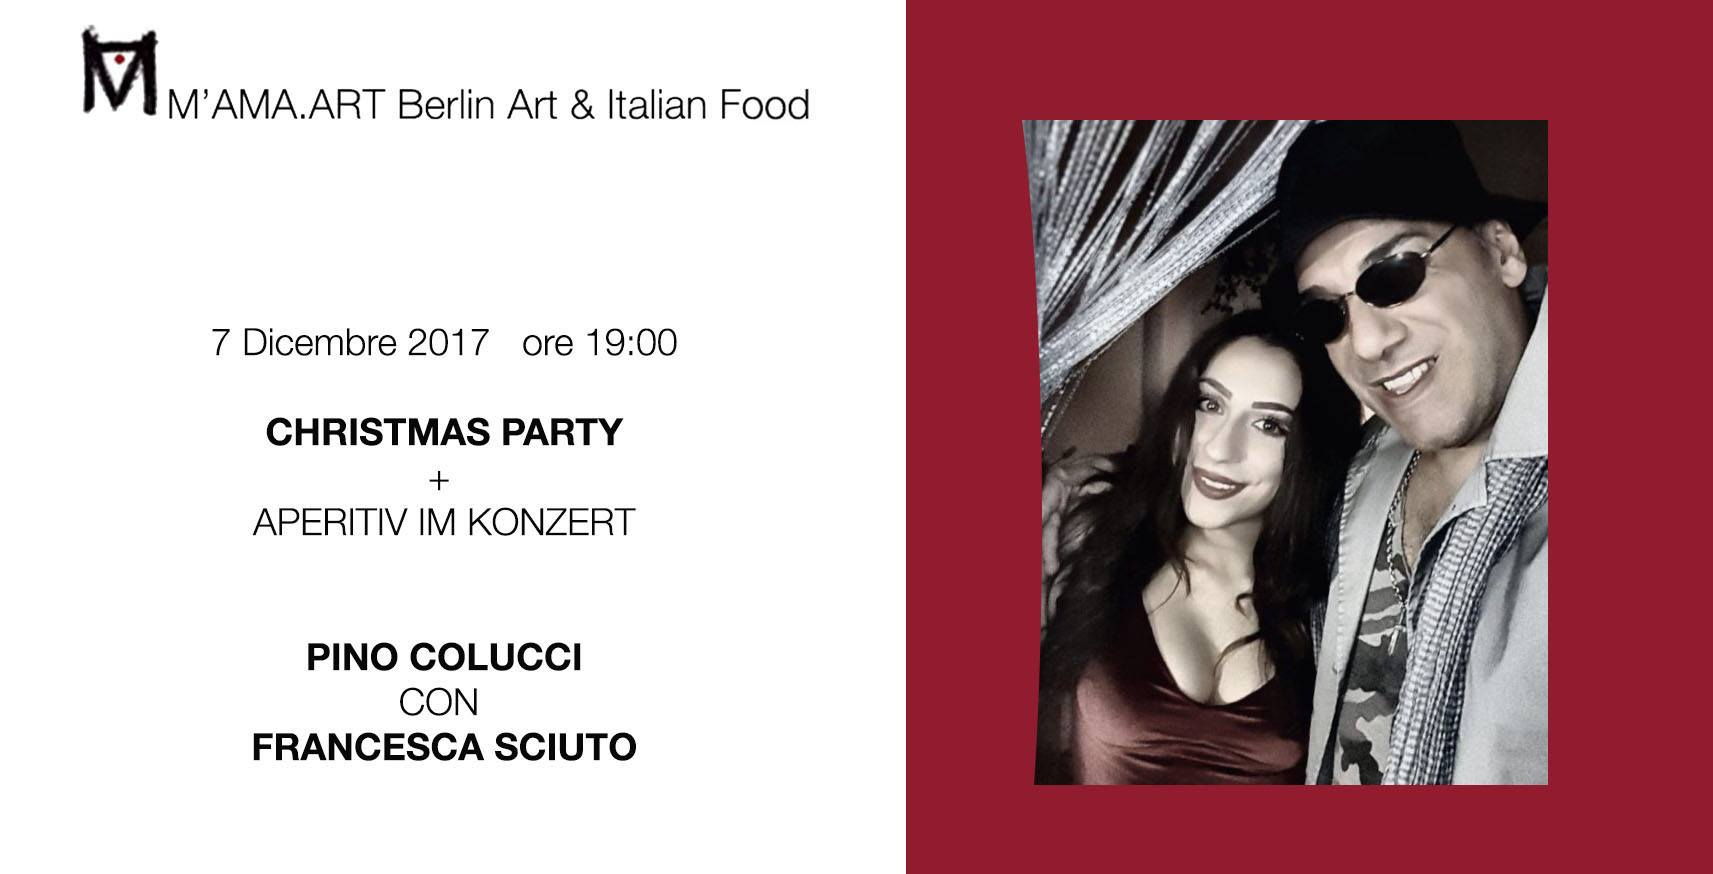 Christmas Party – 7 dicembre 2017 – ore 19:00 <BR> PINO COLUCCI e FRANCESCA SCIUTO in concerto M'AMA. ART Berlin